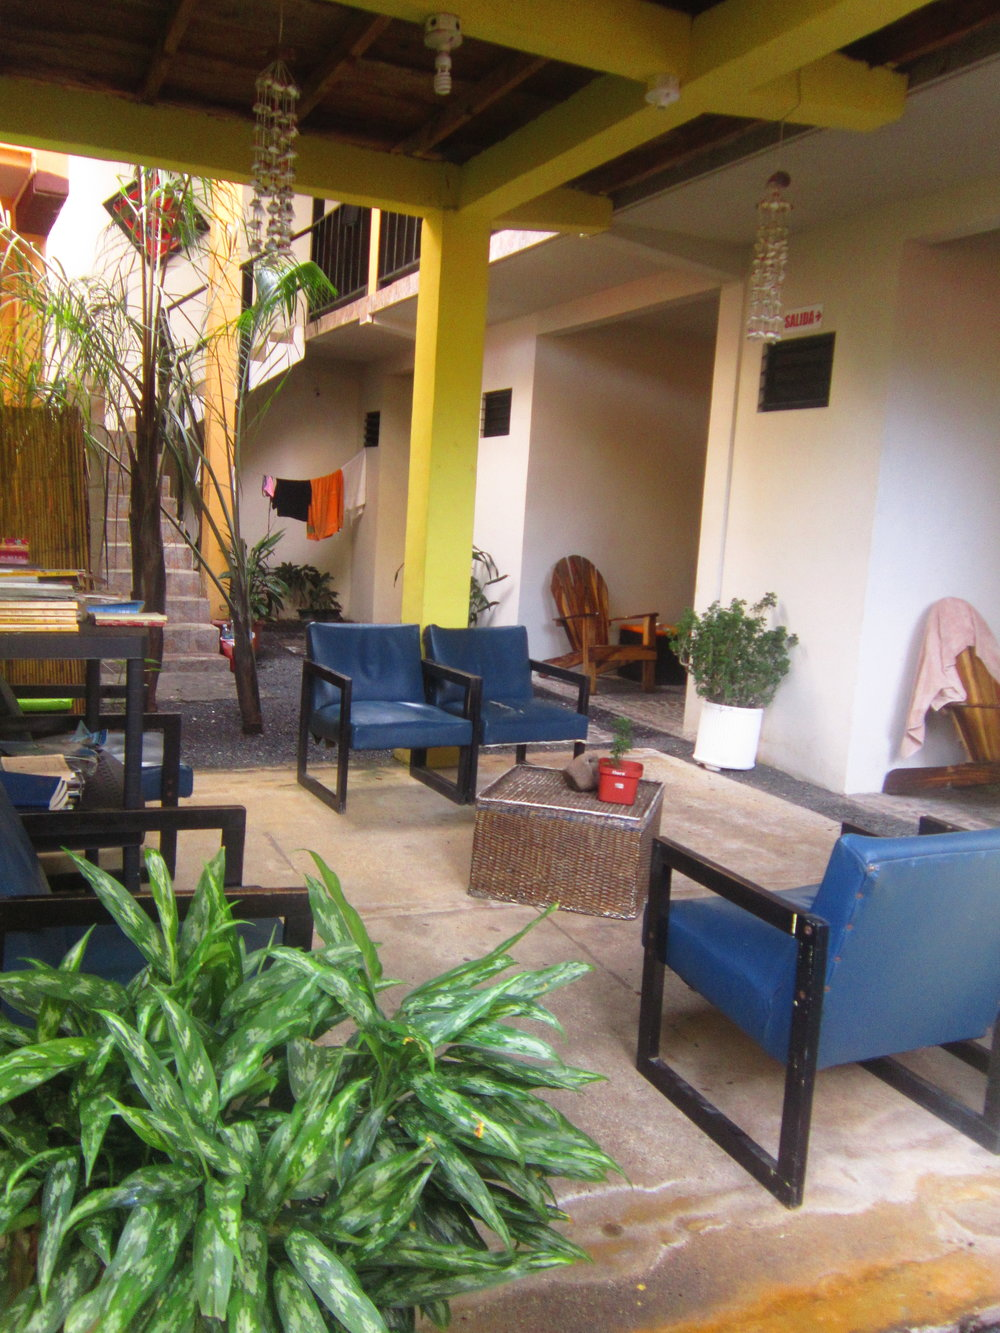 Common areas outside the rooms